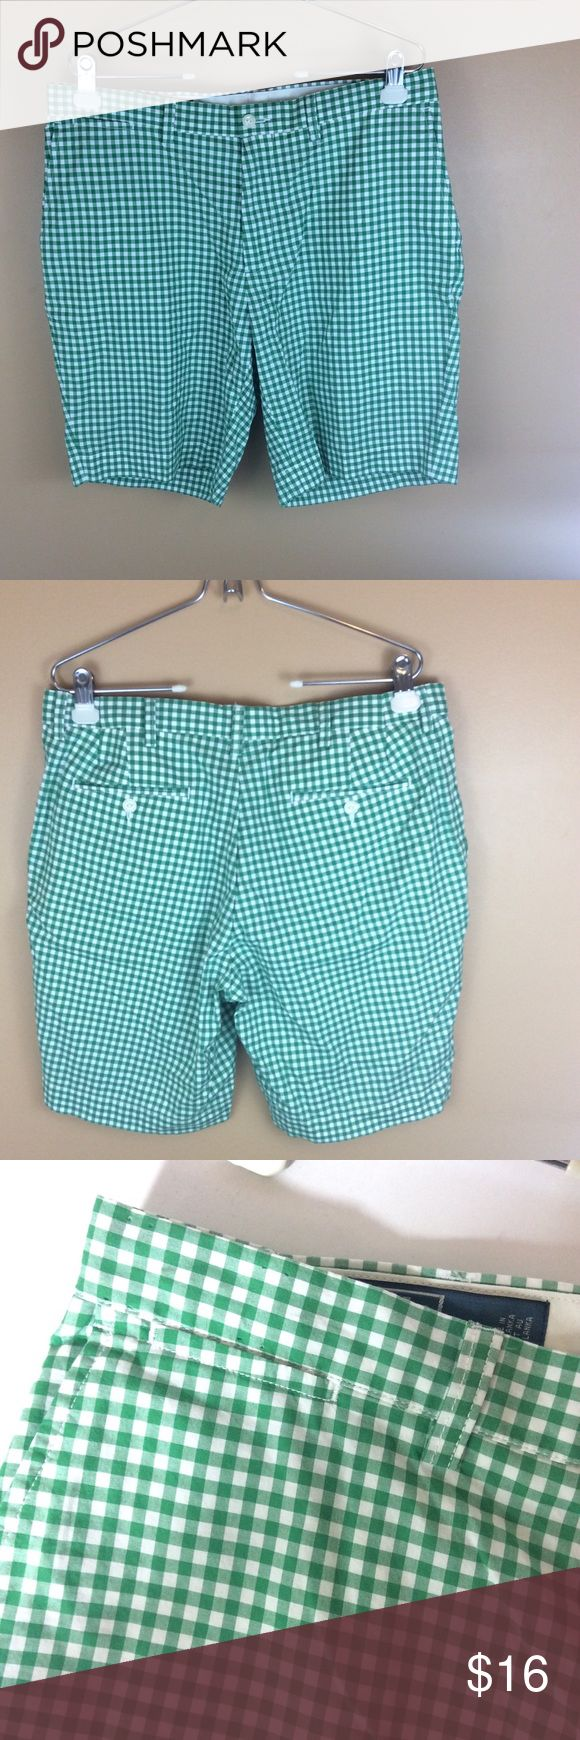 """Polo Ralph Lauren Green Gingham Plaid Shorts  34 For sale is this great pair of Ralph Lauren Suffeild shorts. Green & white gingham plaid, flat front.100% Cotton  Men's Size 38 THIS ITEM HAS BEEN ALTERED. PLEASE NOTE MEASUREMENTS.  Inseam 9""""  Waist 34""""  Rise 10.5"""" Ralph Lauren Shorts Flat Front"""